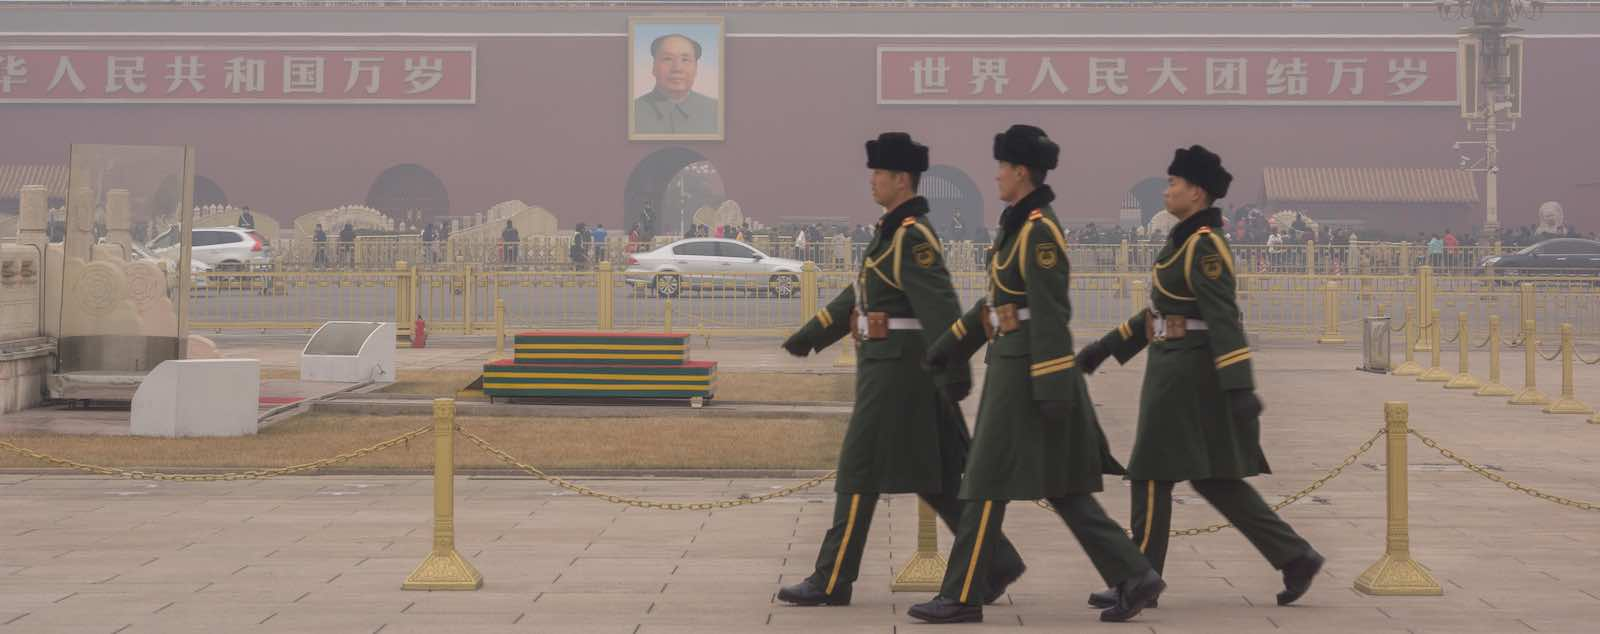 Guard soldiers walk through Tiananmen square in the heavy haze (Photo: VCG via Getty)